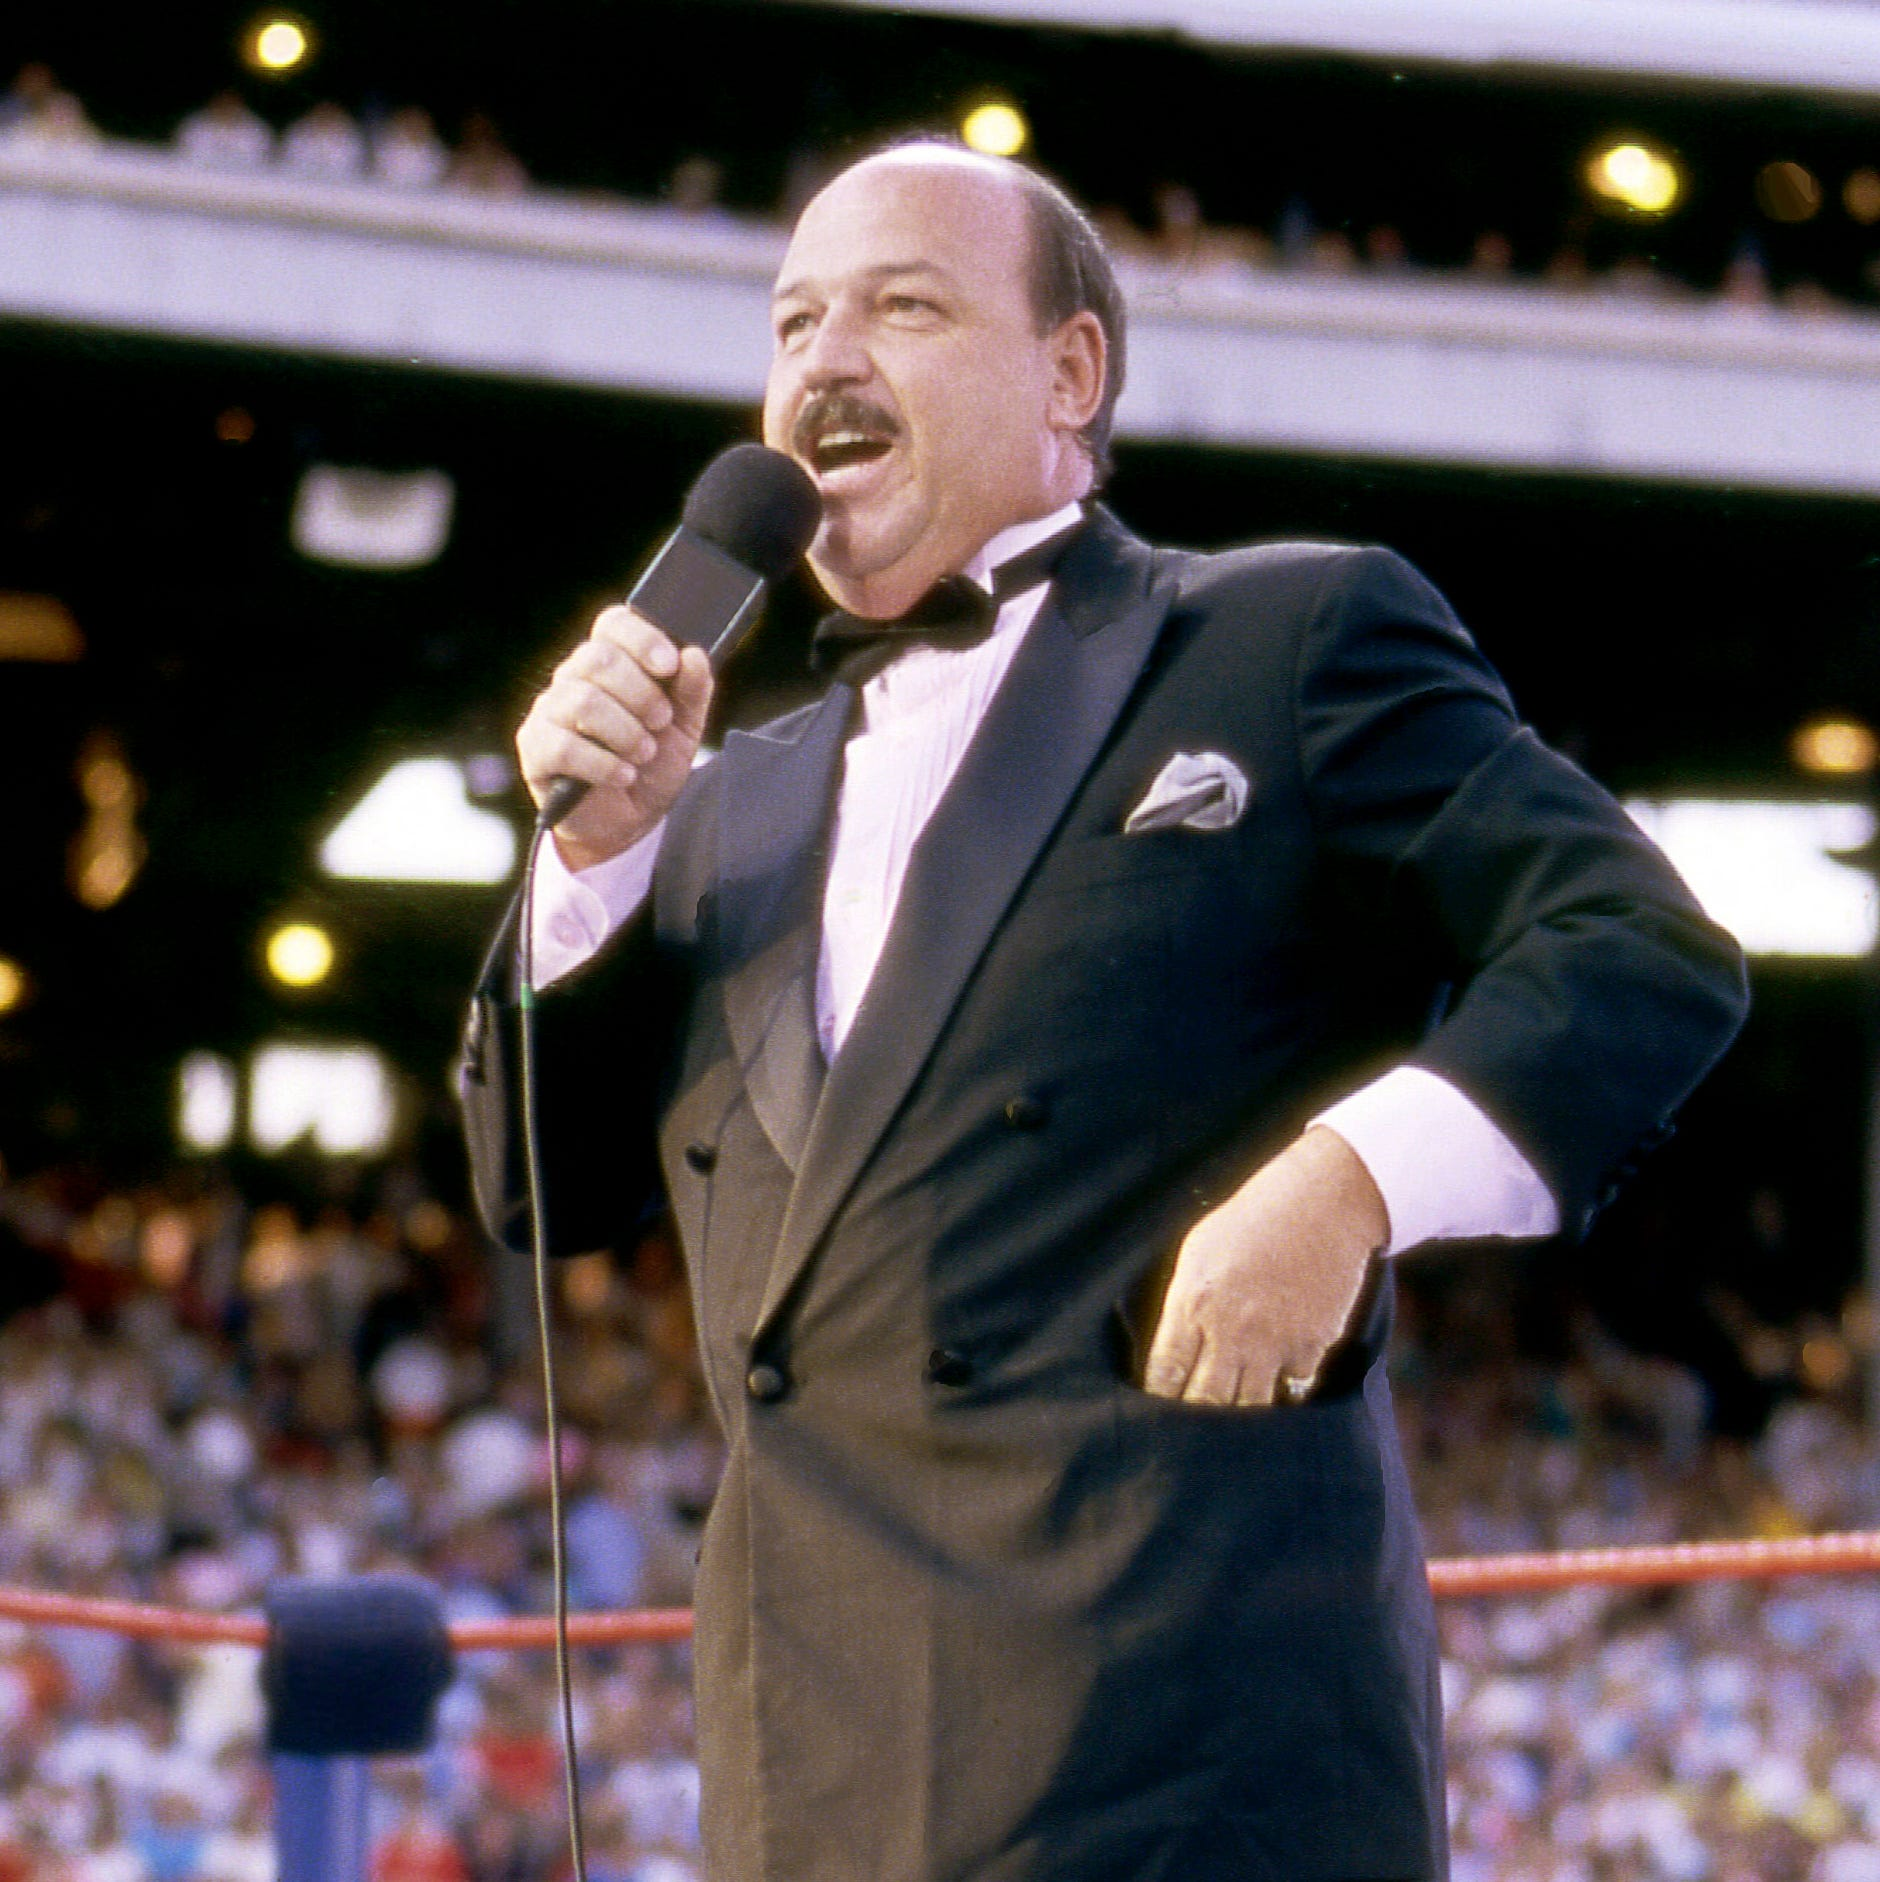 'Mean Gene' Okerlund made an impact at my Minnesota house